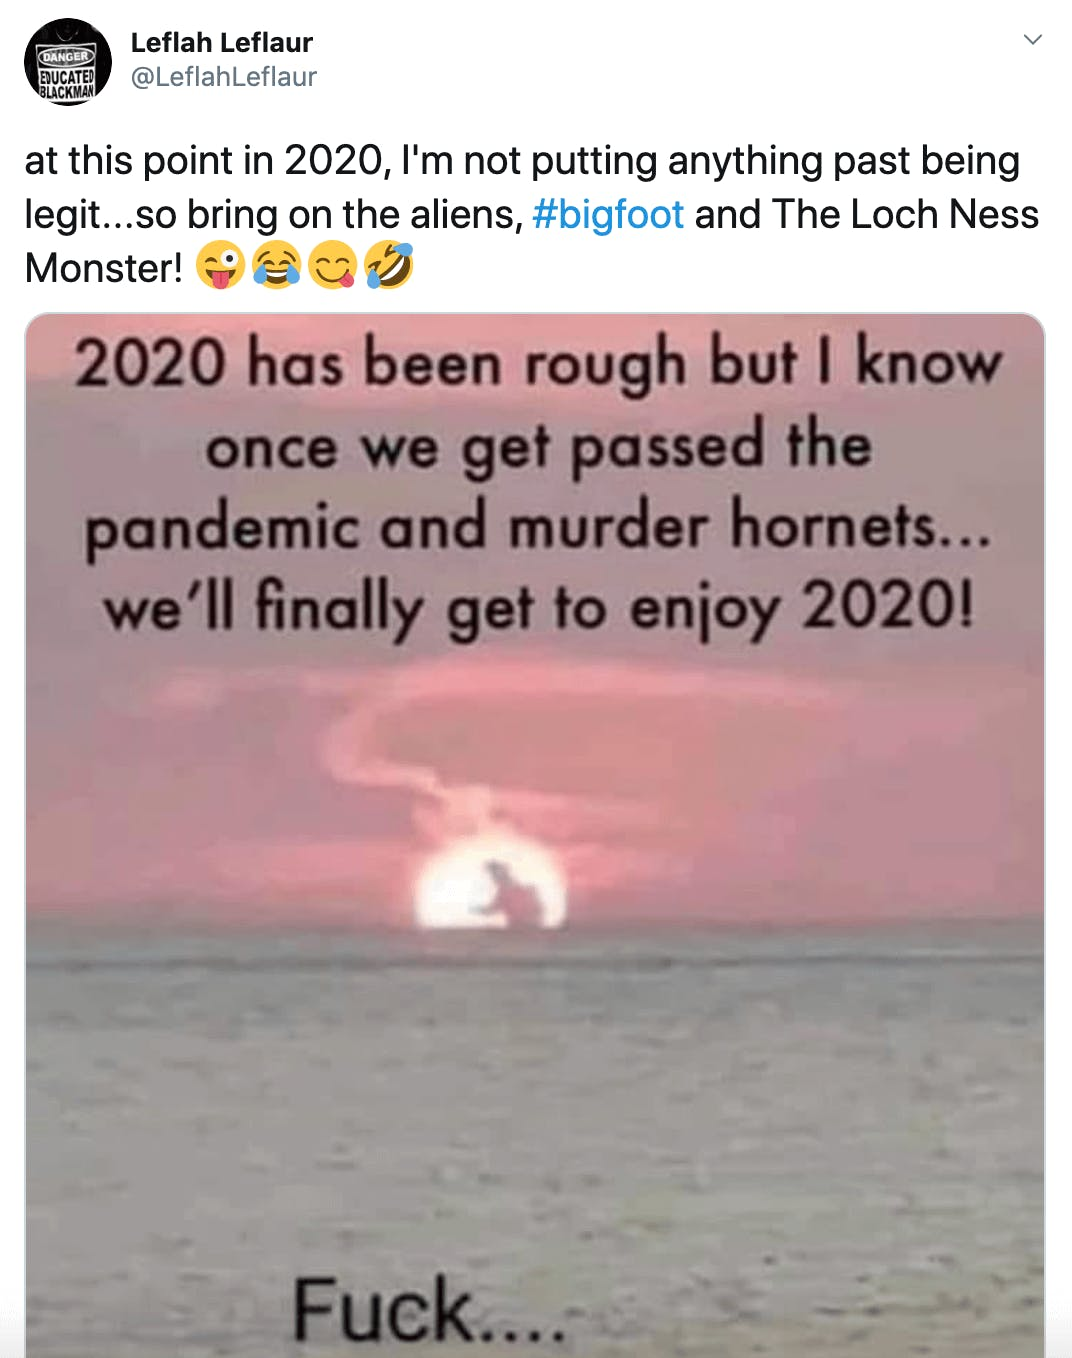 at this point in 2020, I'm not putting anything past being legit...so bring on the aliens, #bigfoot and The Loch Ness Monster! Winking face with tongueFace with tears of joyFace savouring foodRolling on the floor laughing